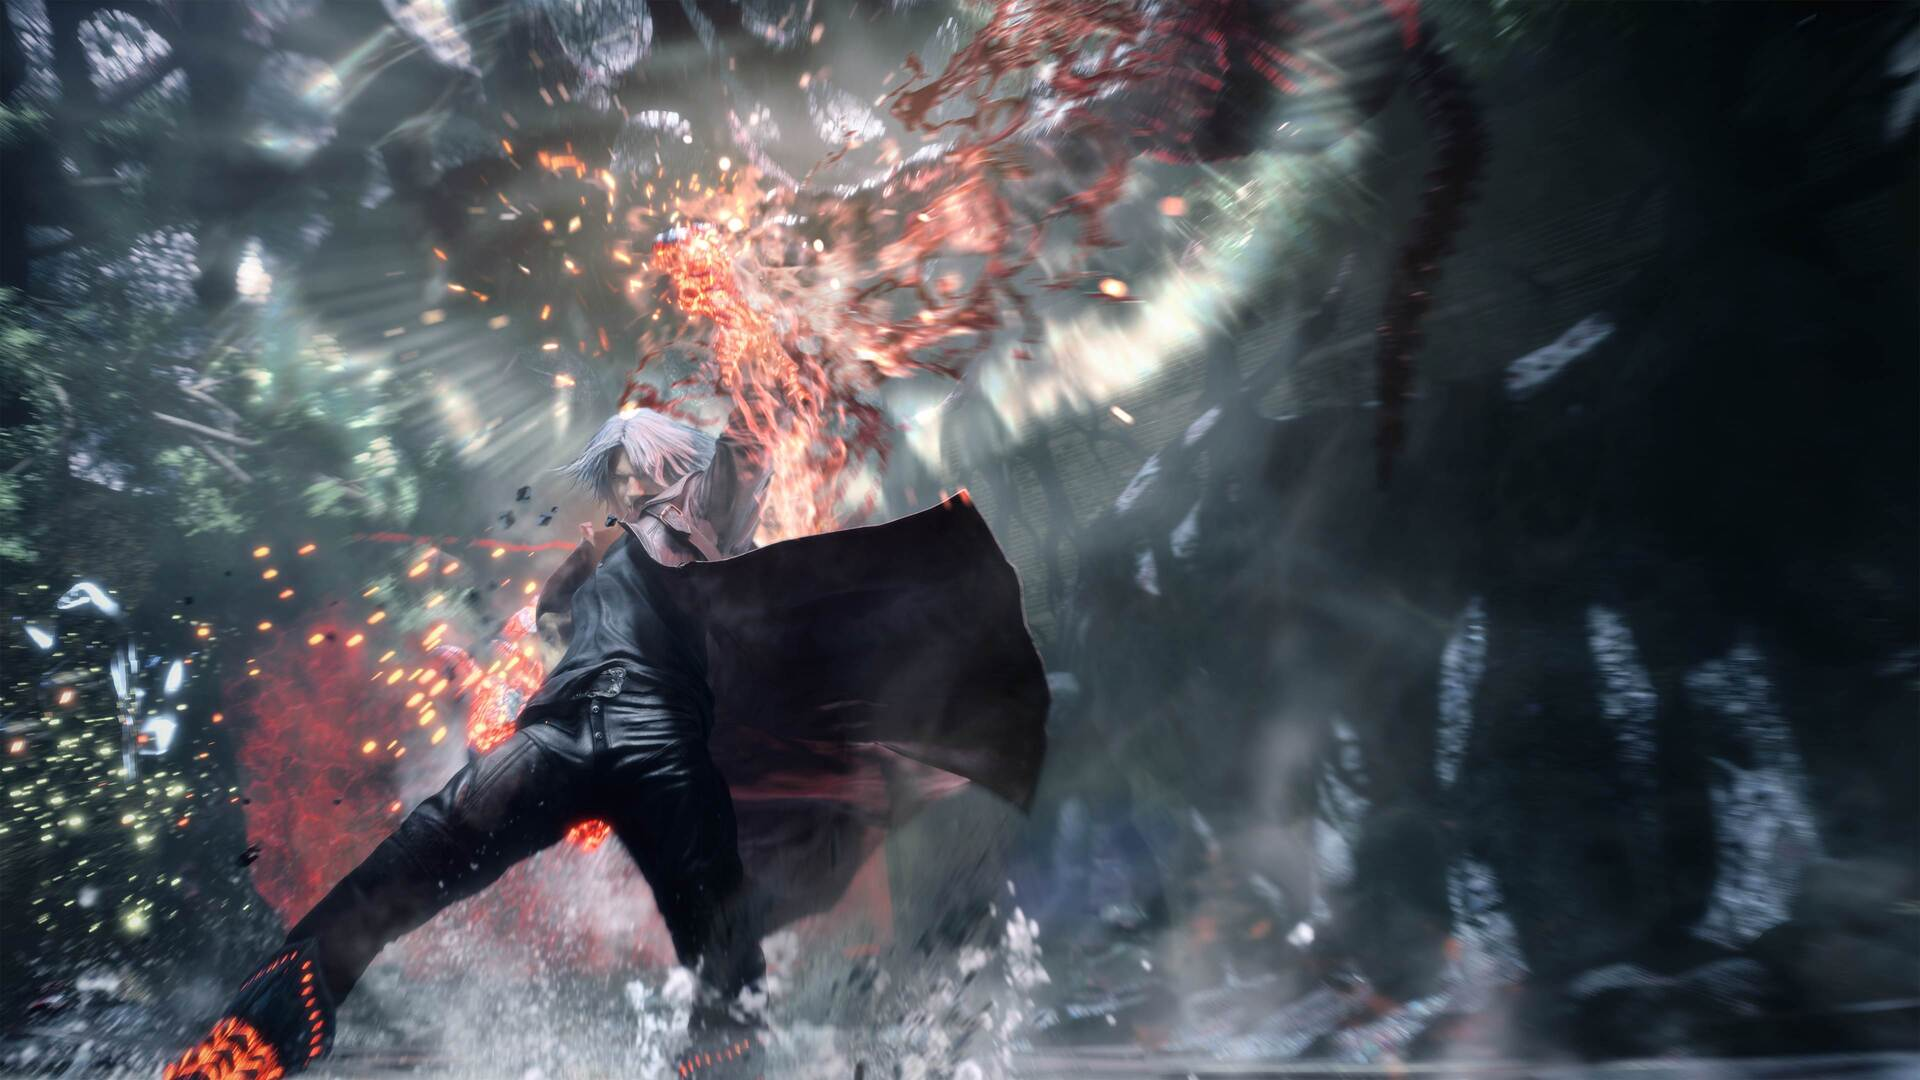 1920x1080 Devil May Cry 5 4k 2019 Game Laptop Full Hd 1080p Hd 4k